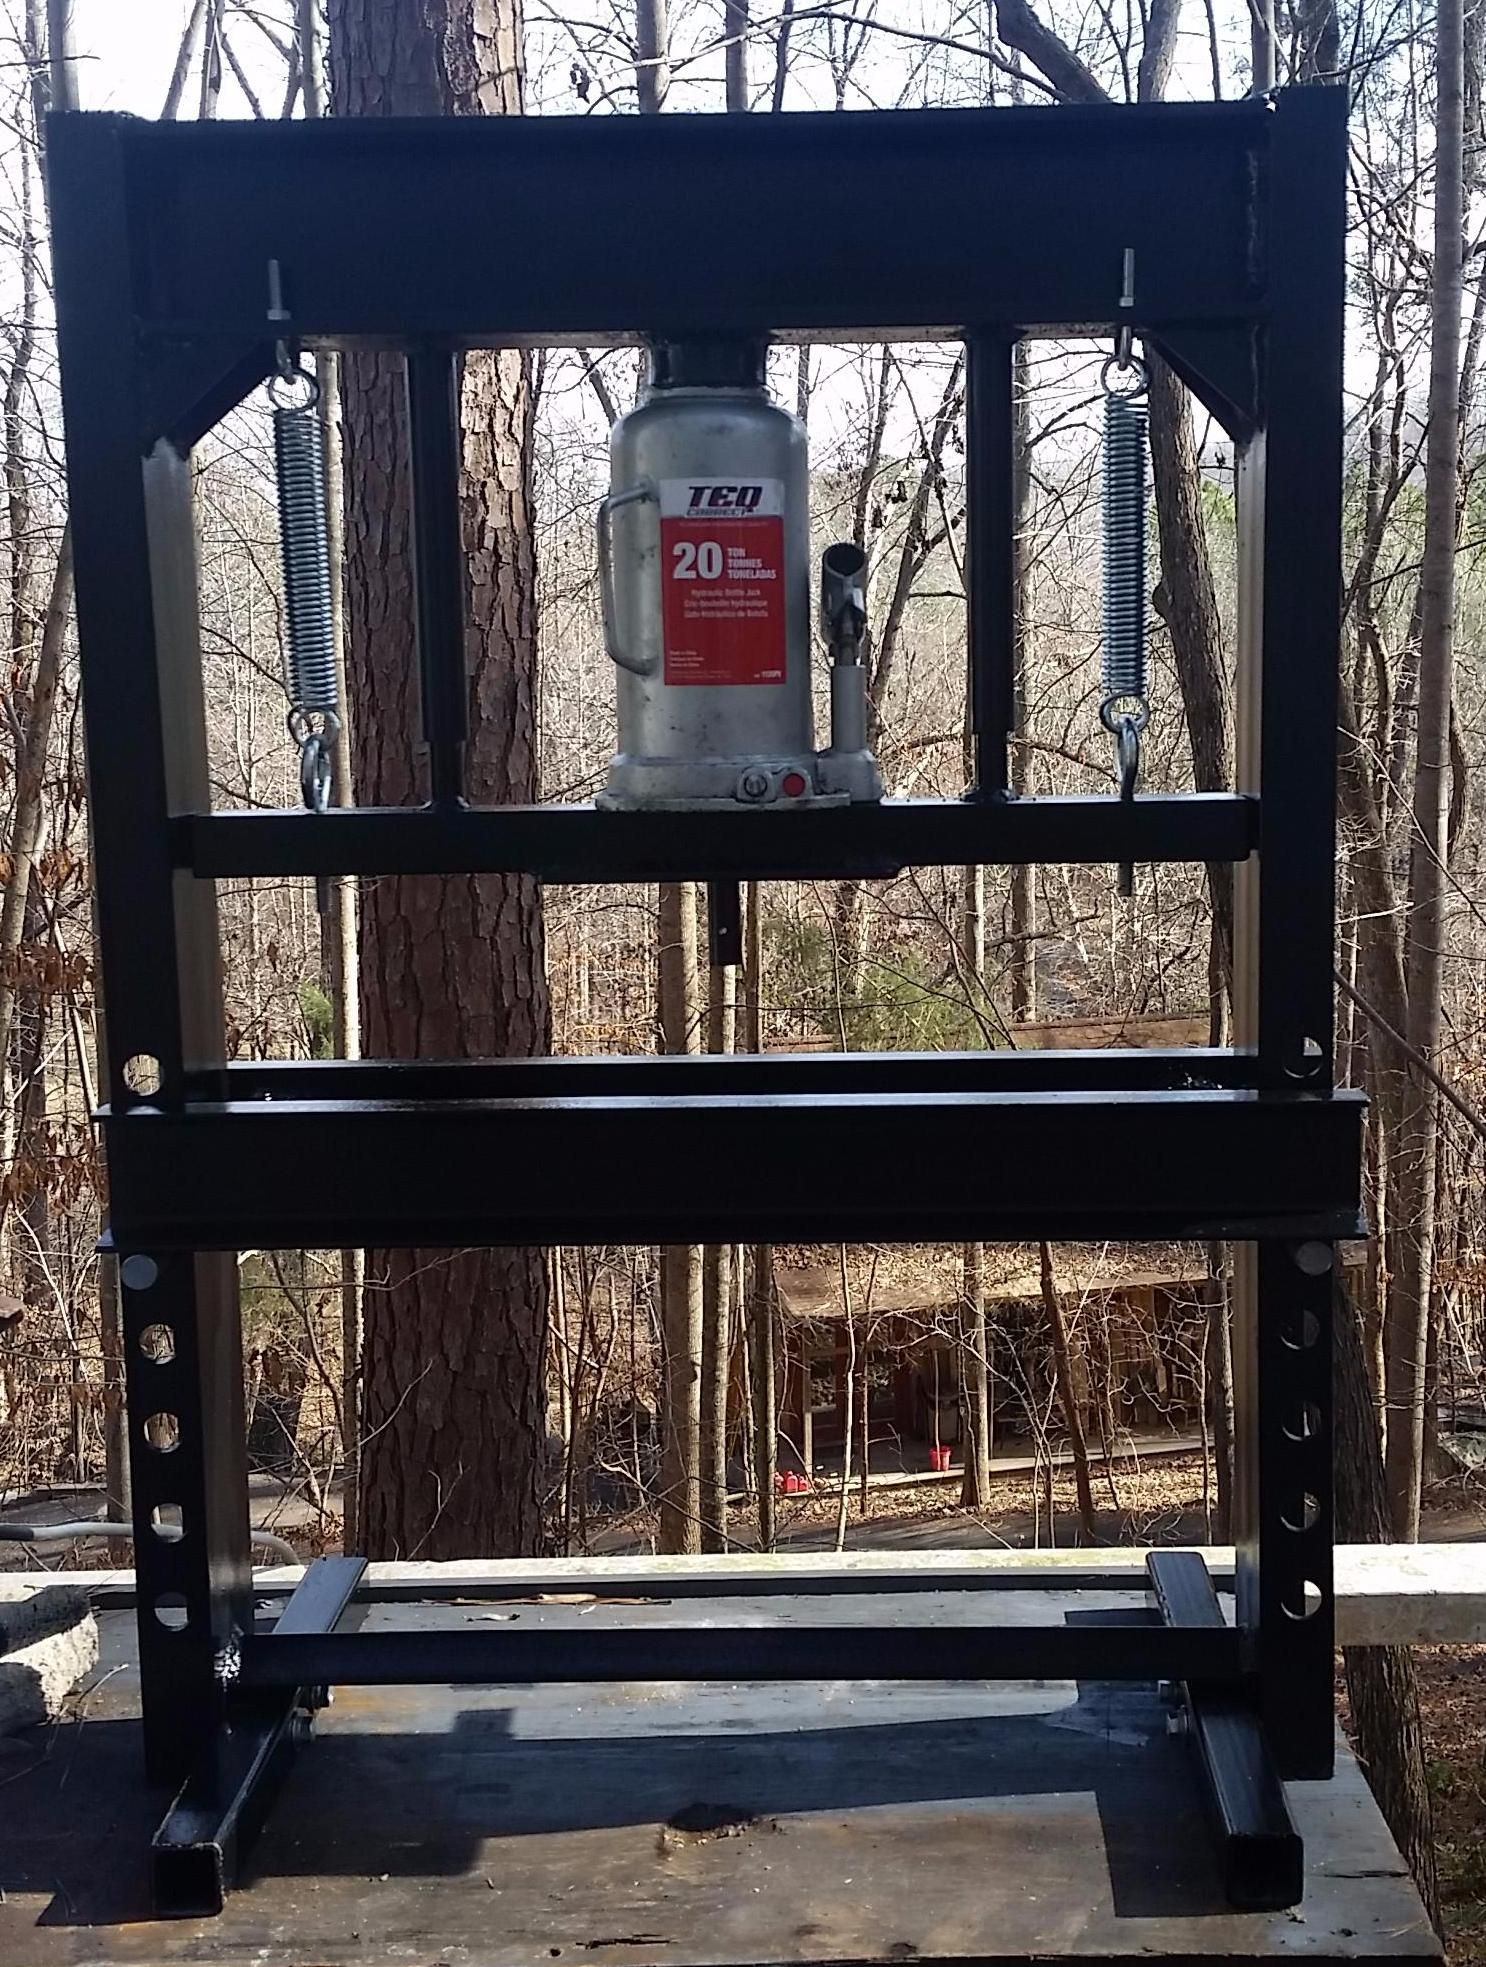 Hydraulic shop press build x post from rmetalworking do it hydraulic shop press build x post from rmetalworking diy weldingwelding projectsdiy solutioingenieria Image collections